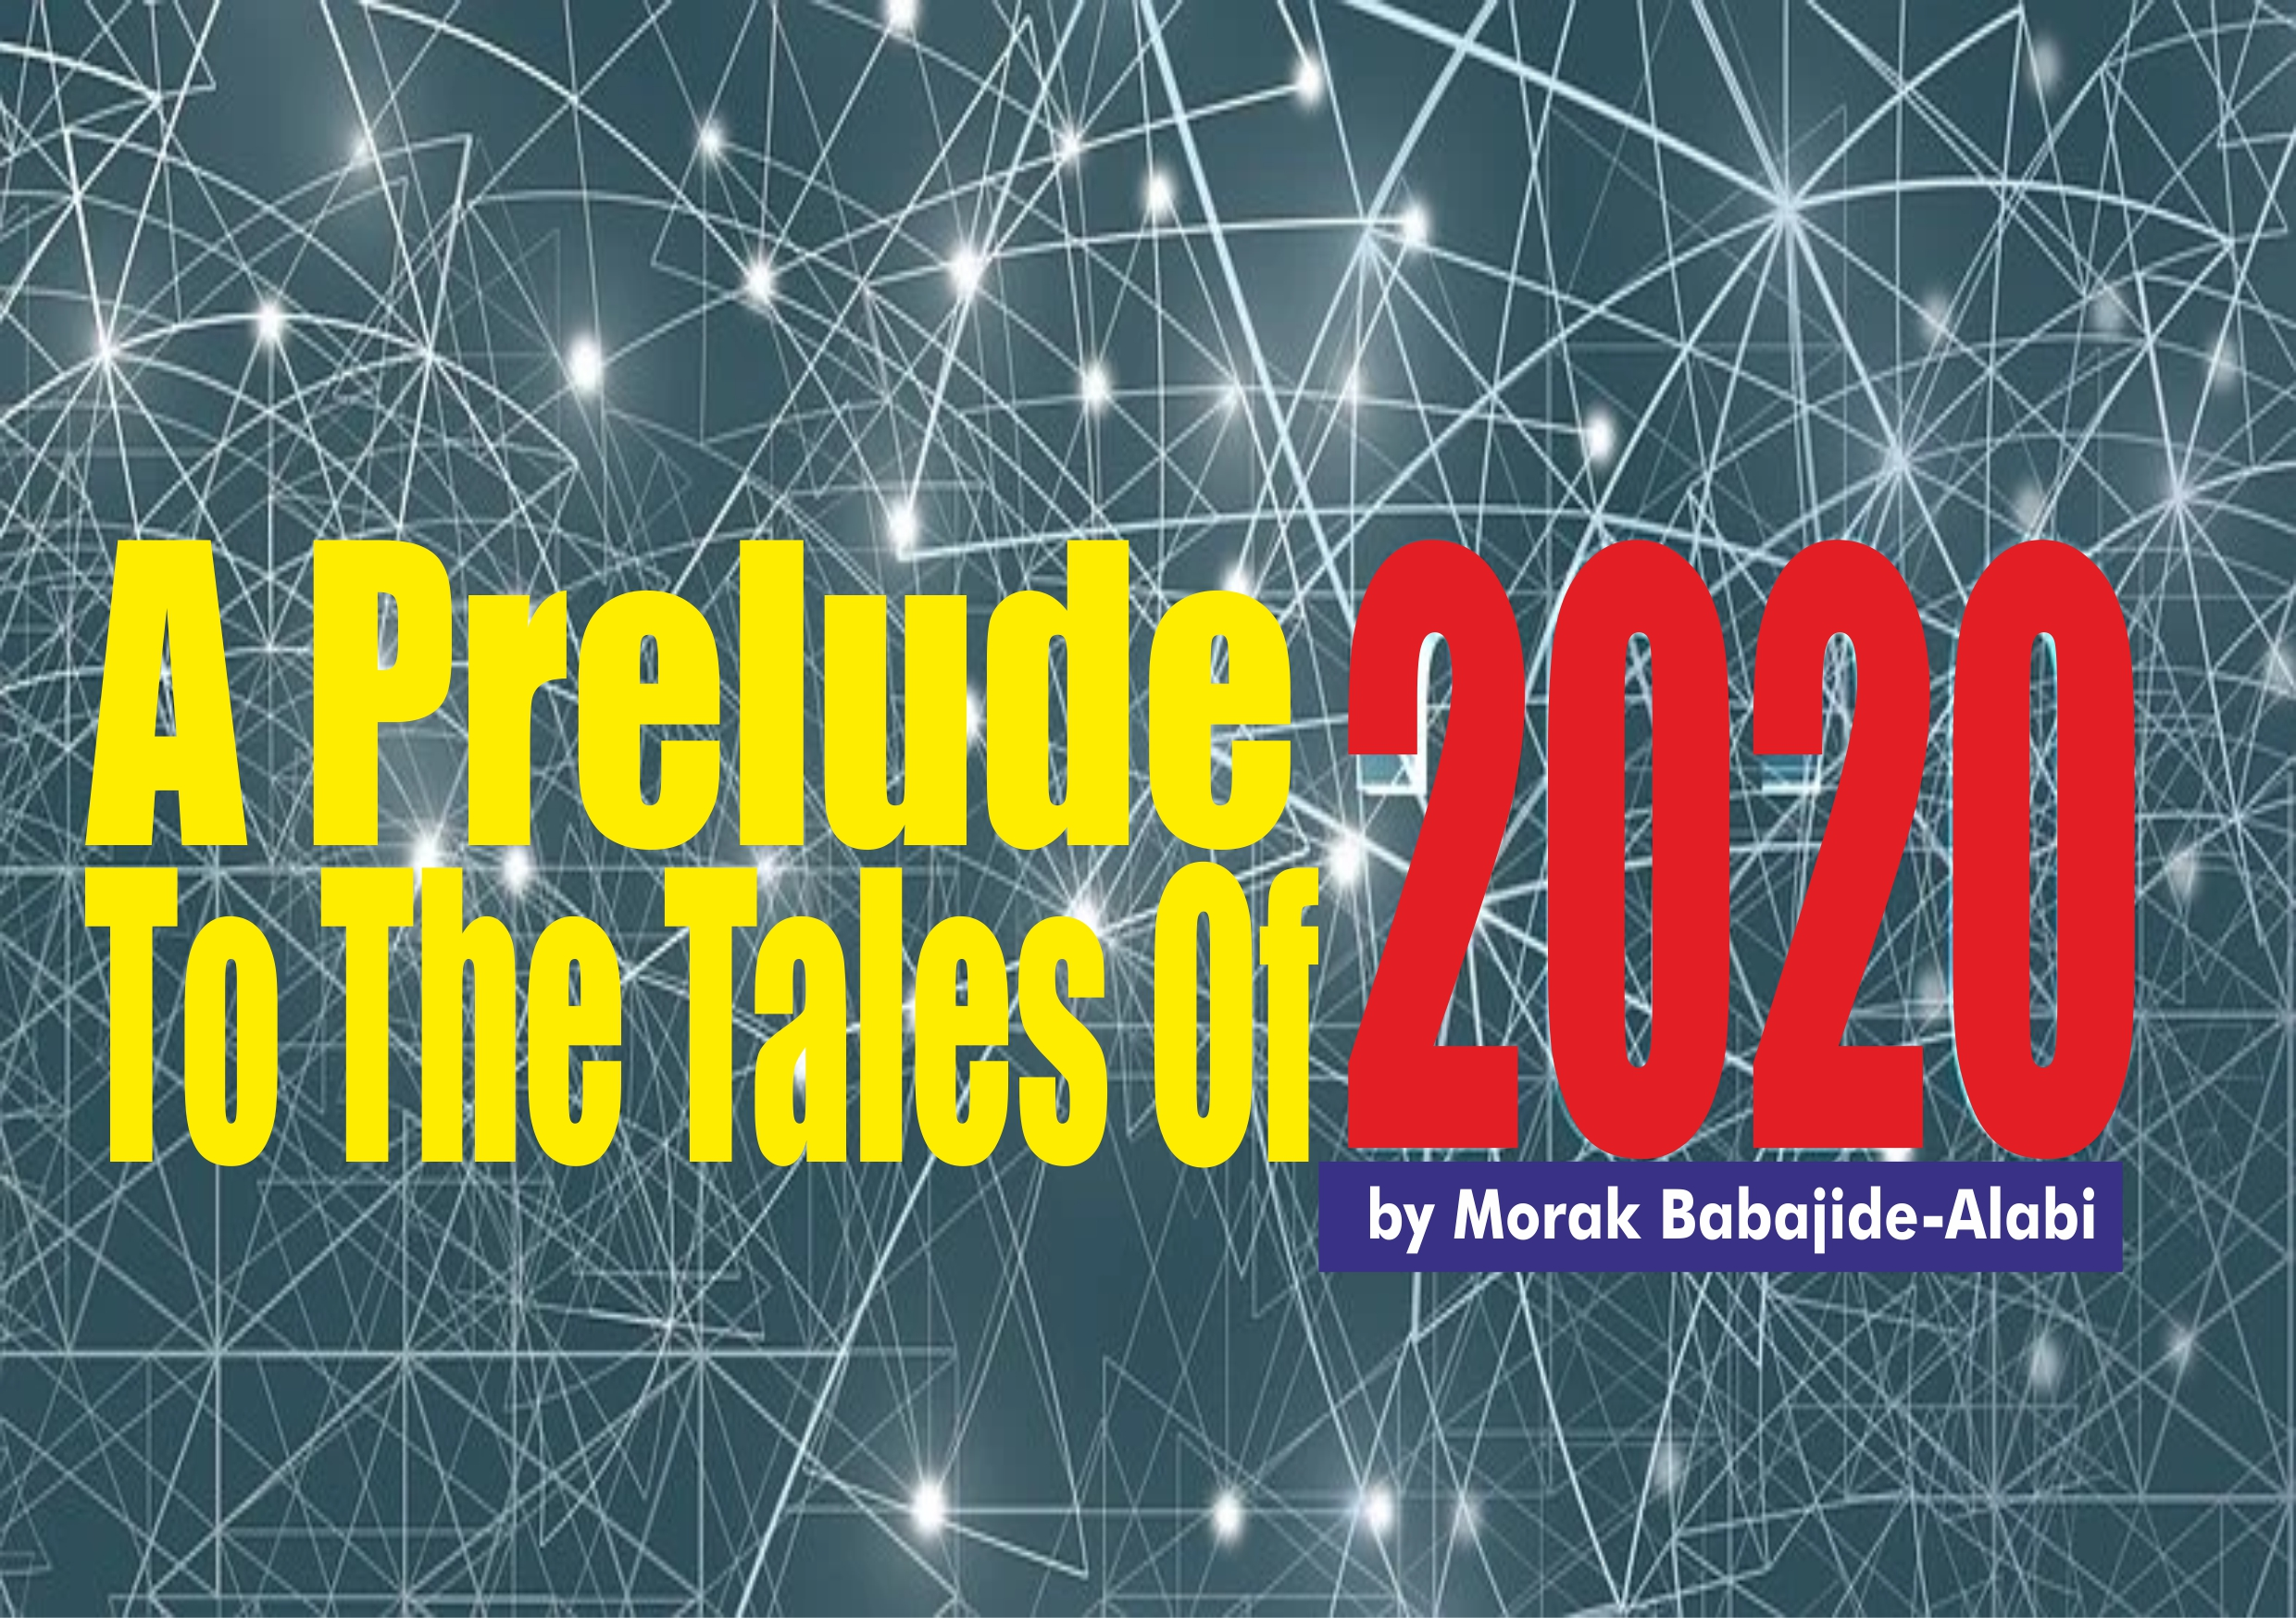 A Prelude To The Tales of 2020, by Morak Babajide-Alabi